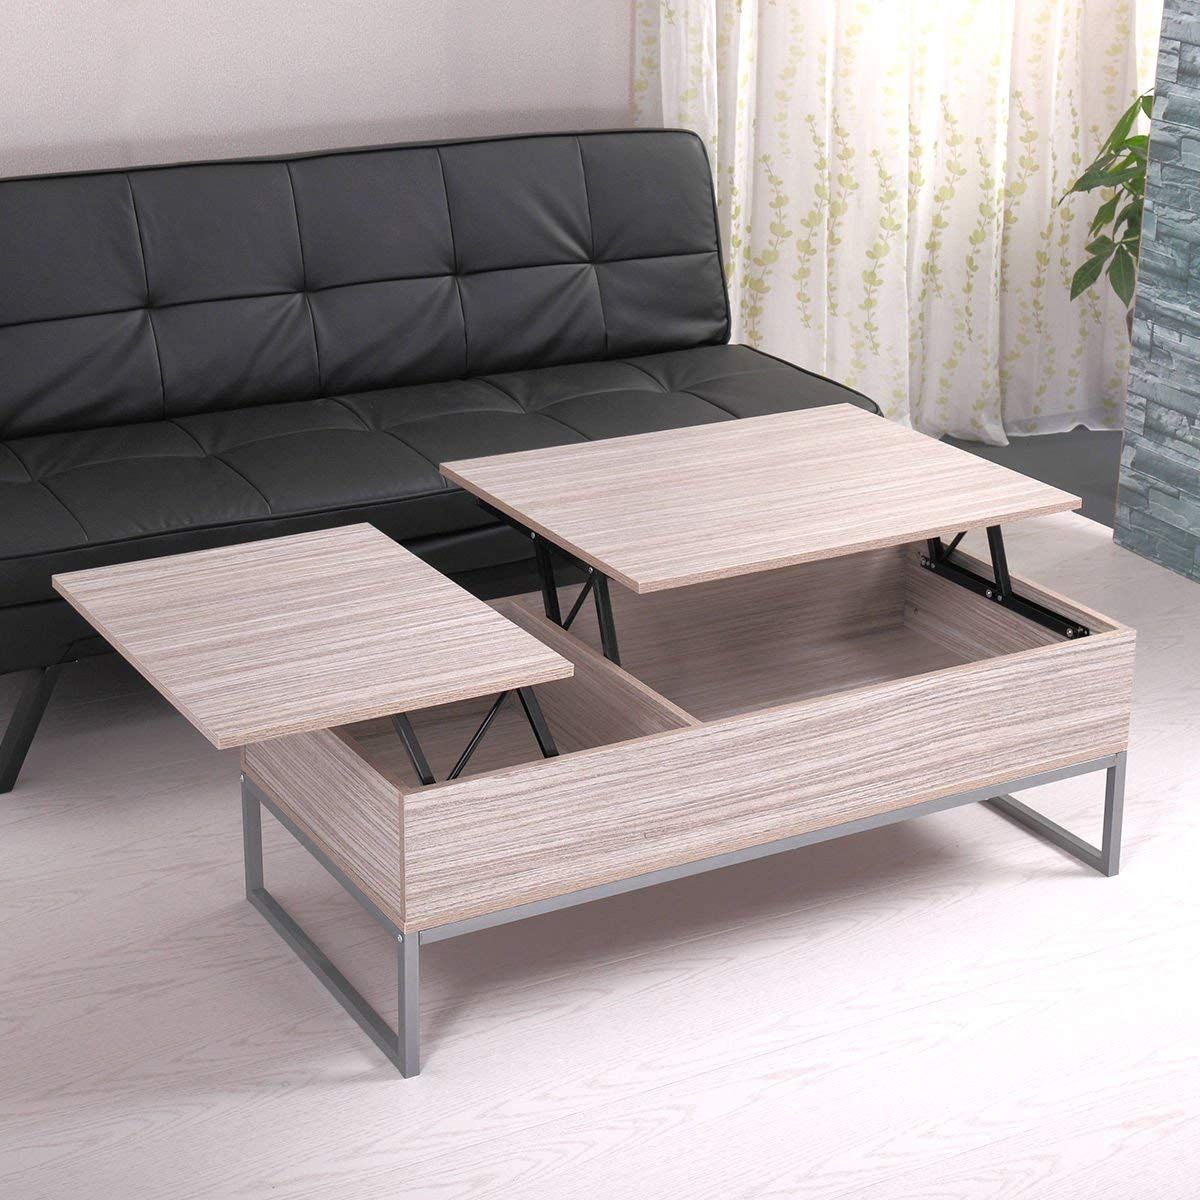 Top Coffee Table With Under Storage Shelf Modern Living Room